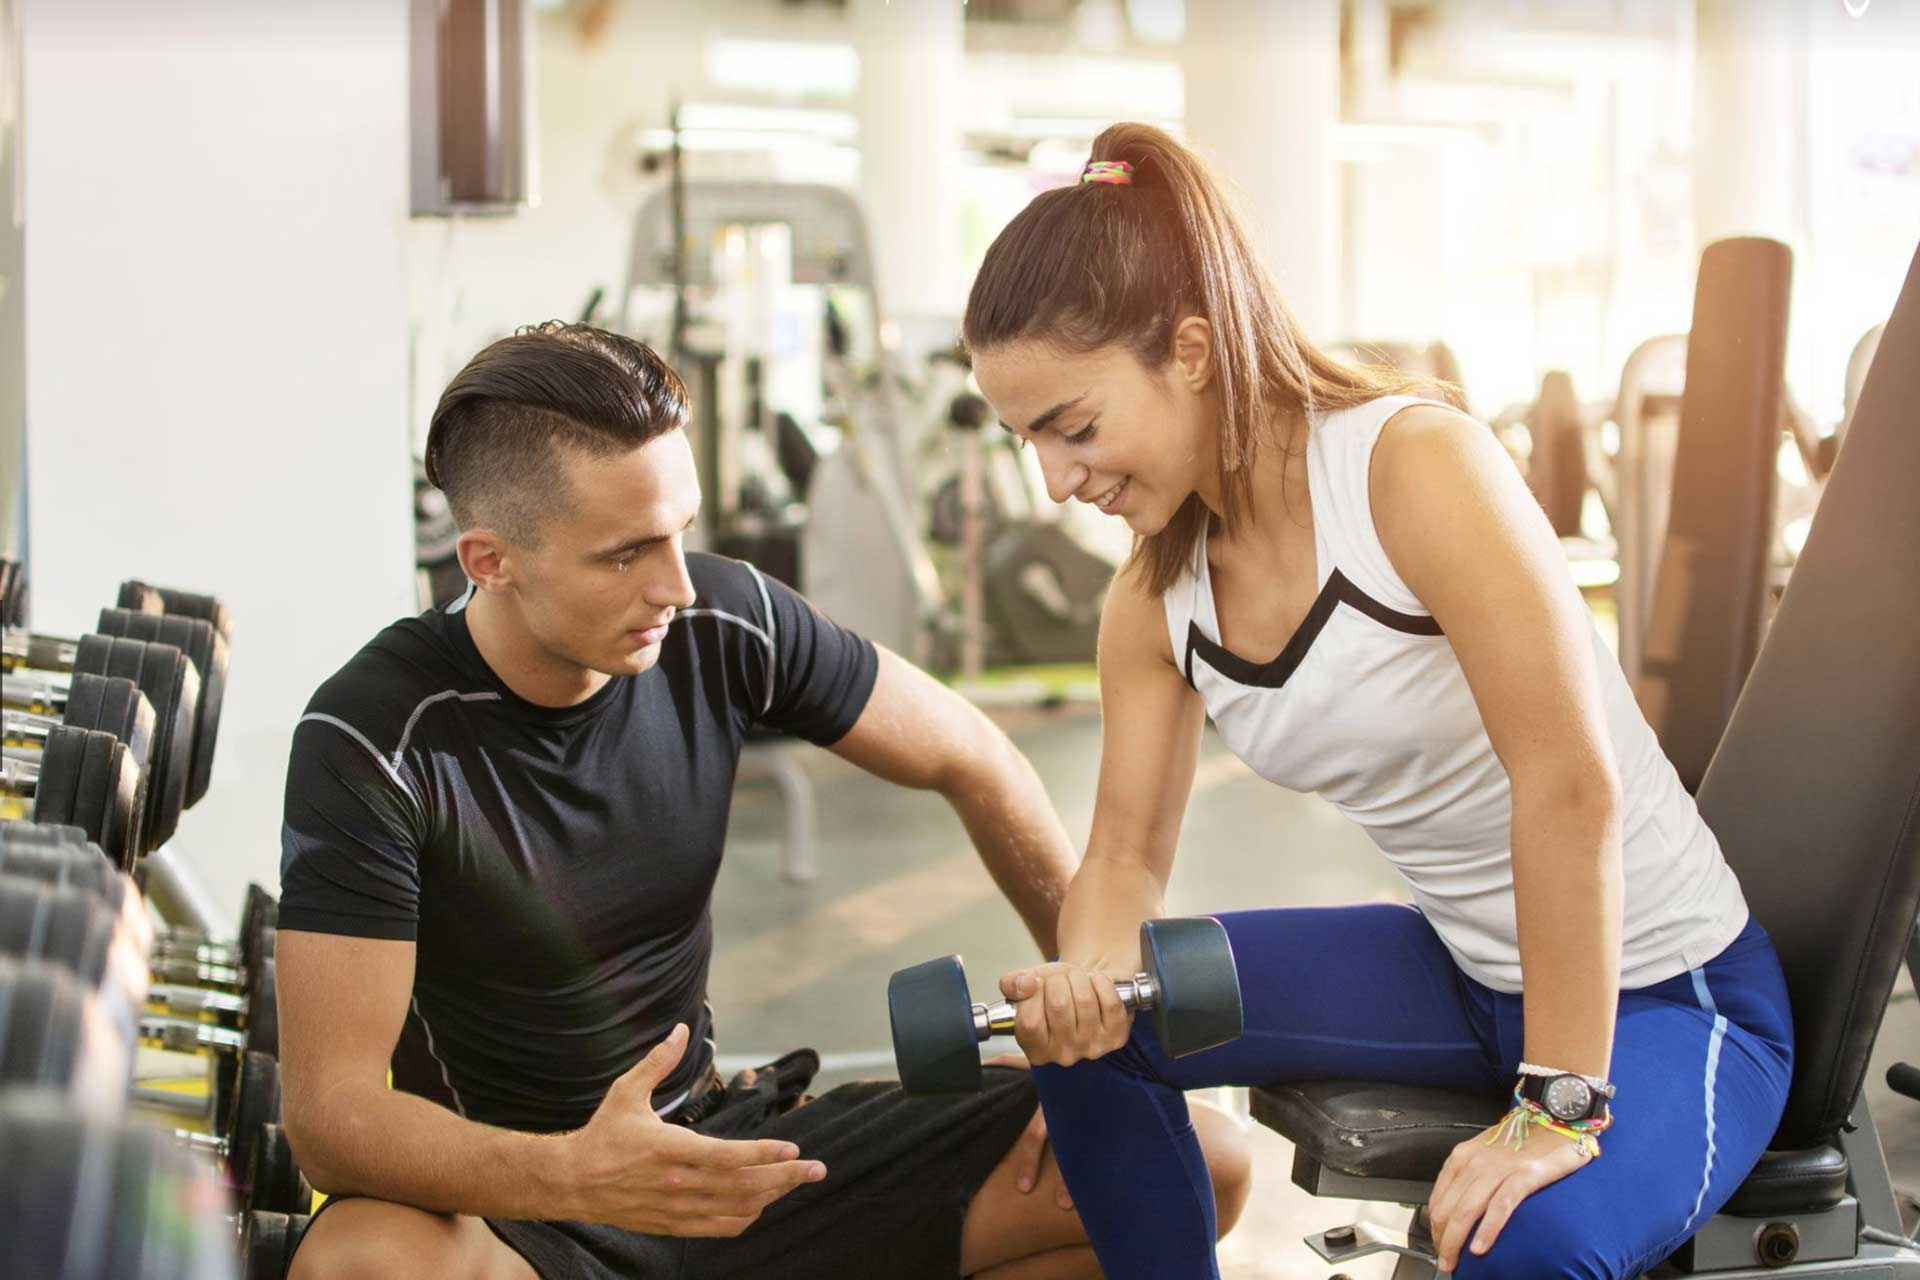 Male personal trainer working with a female client